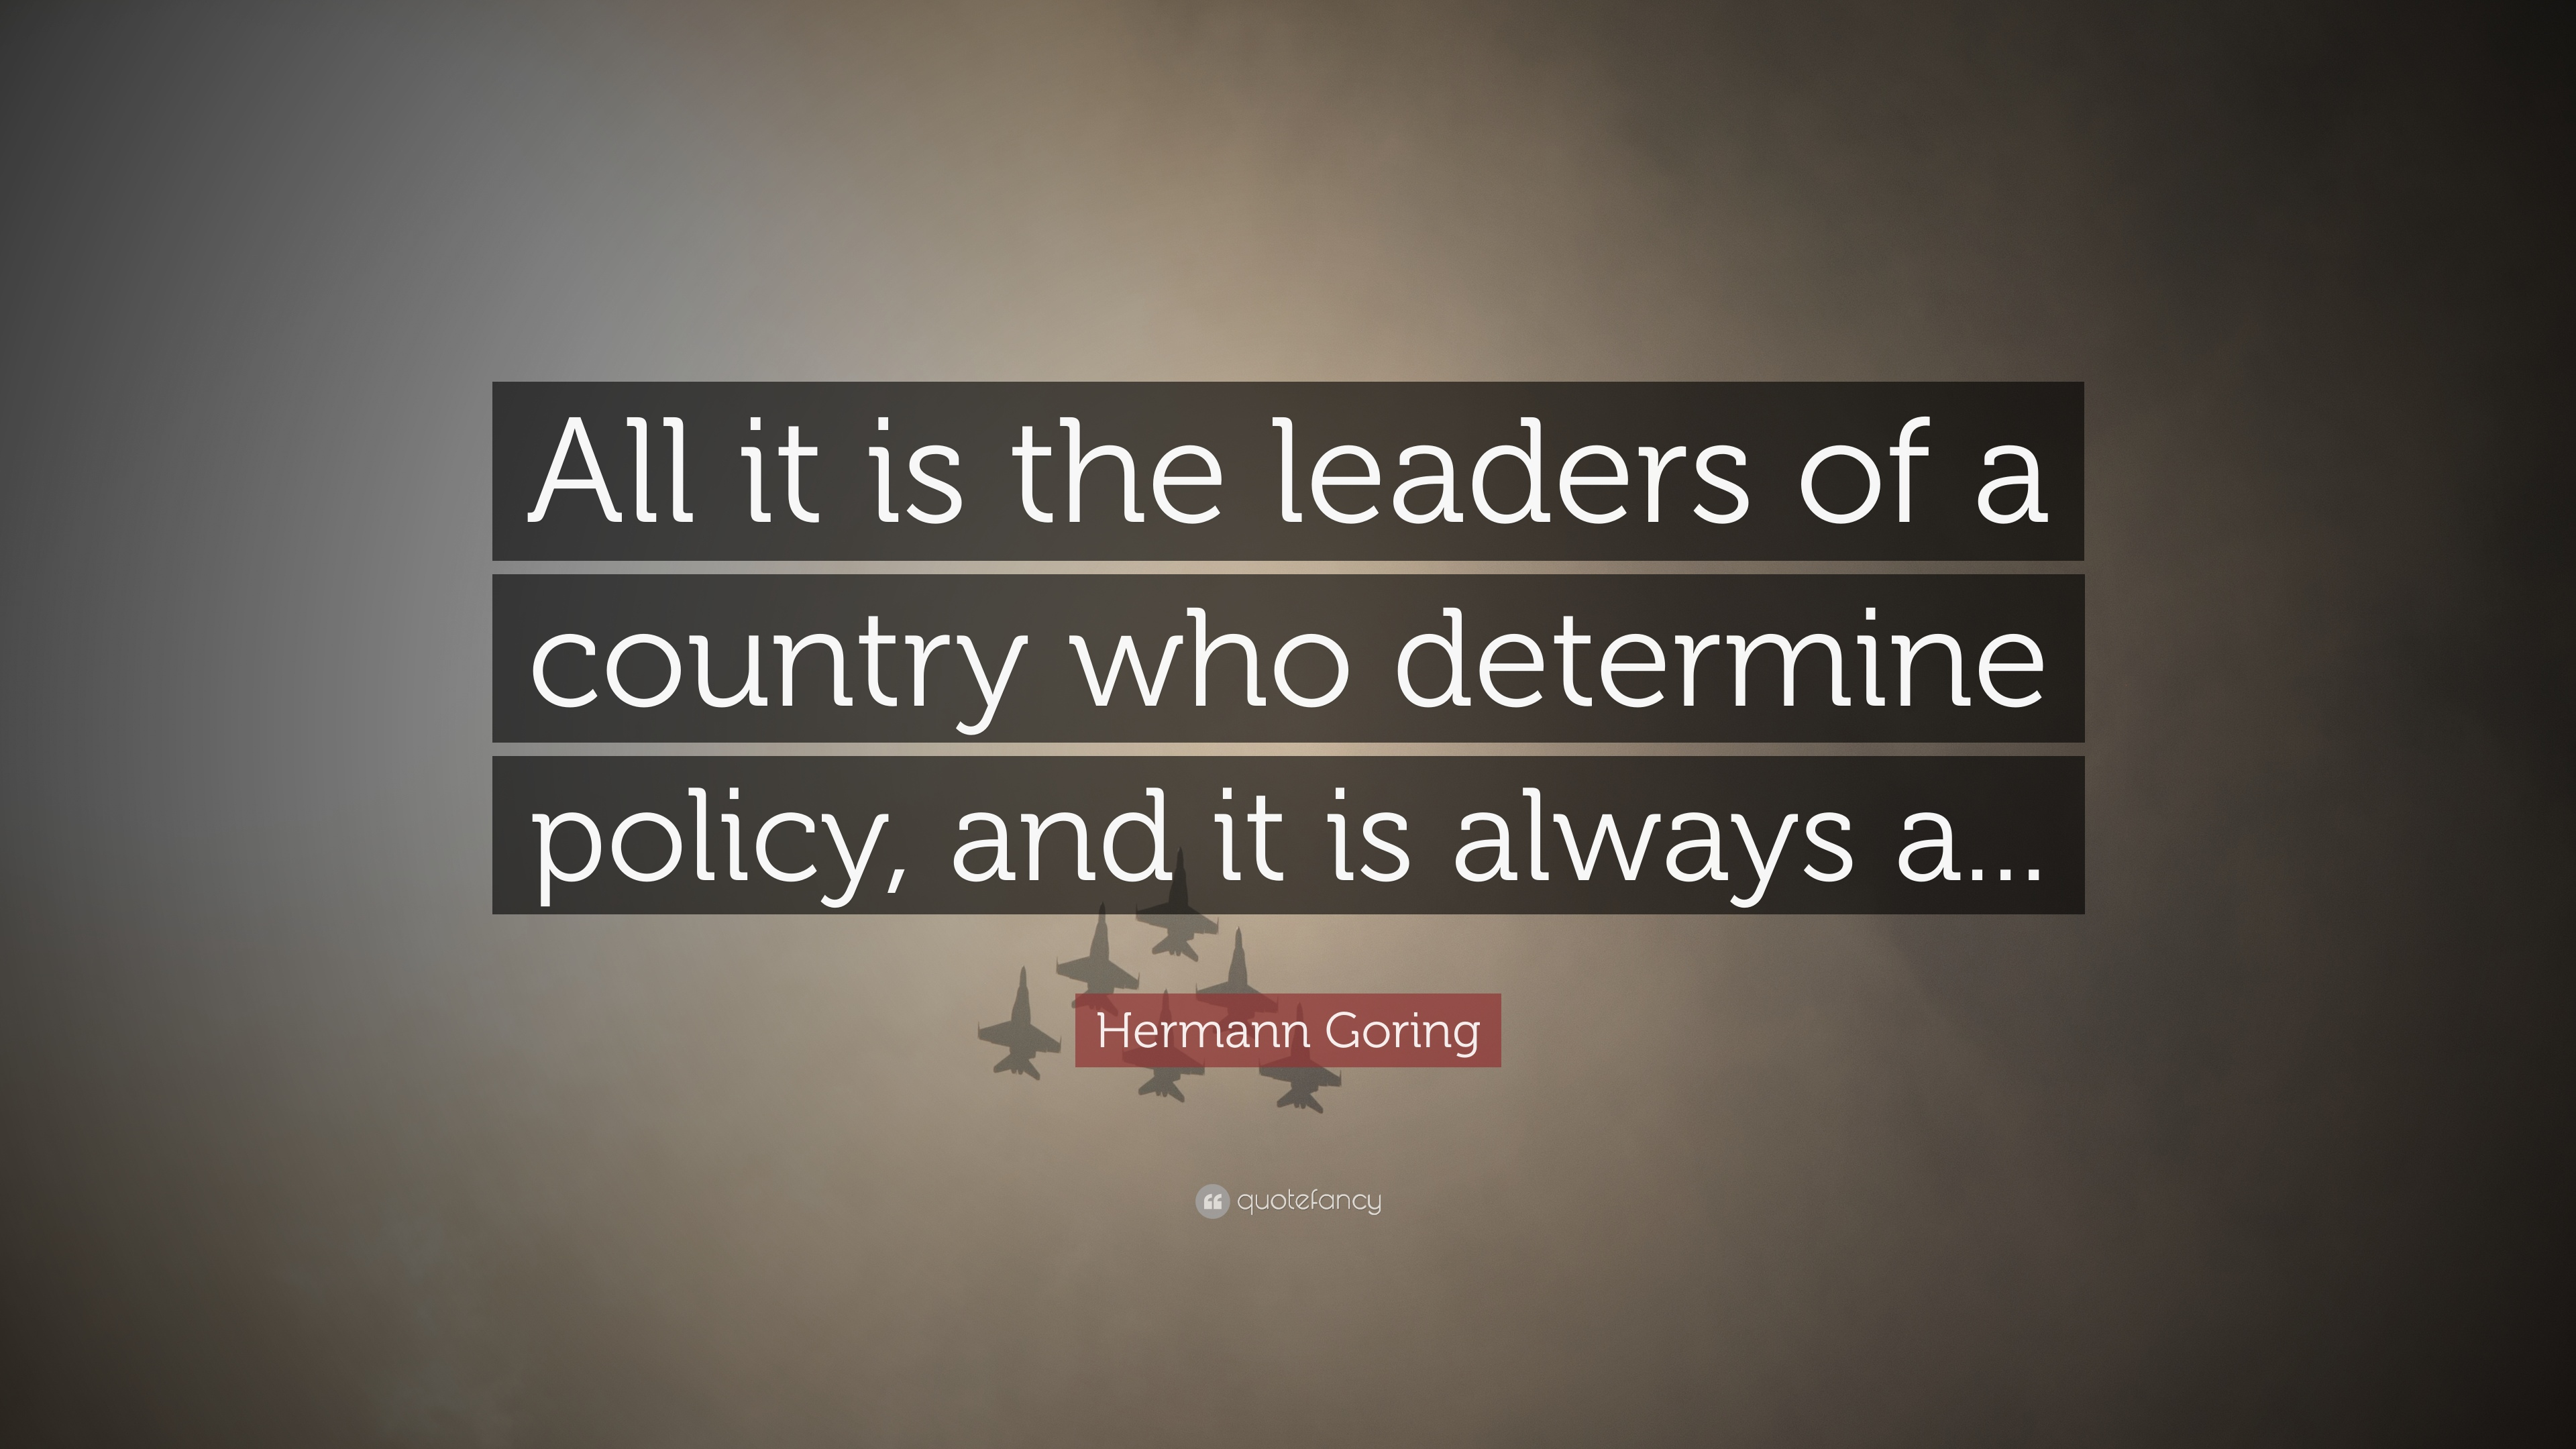 Leadership determines the fate of a country